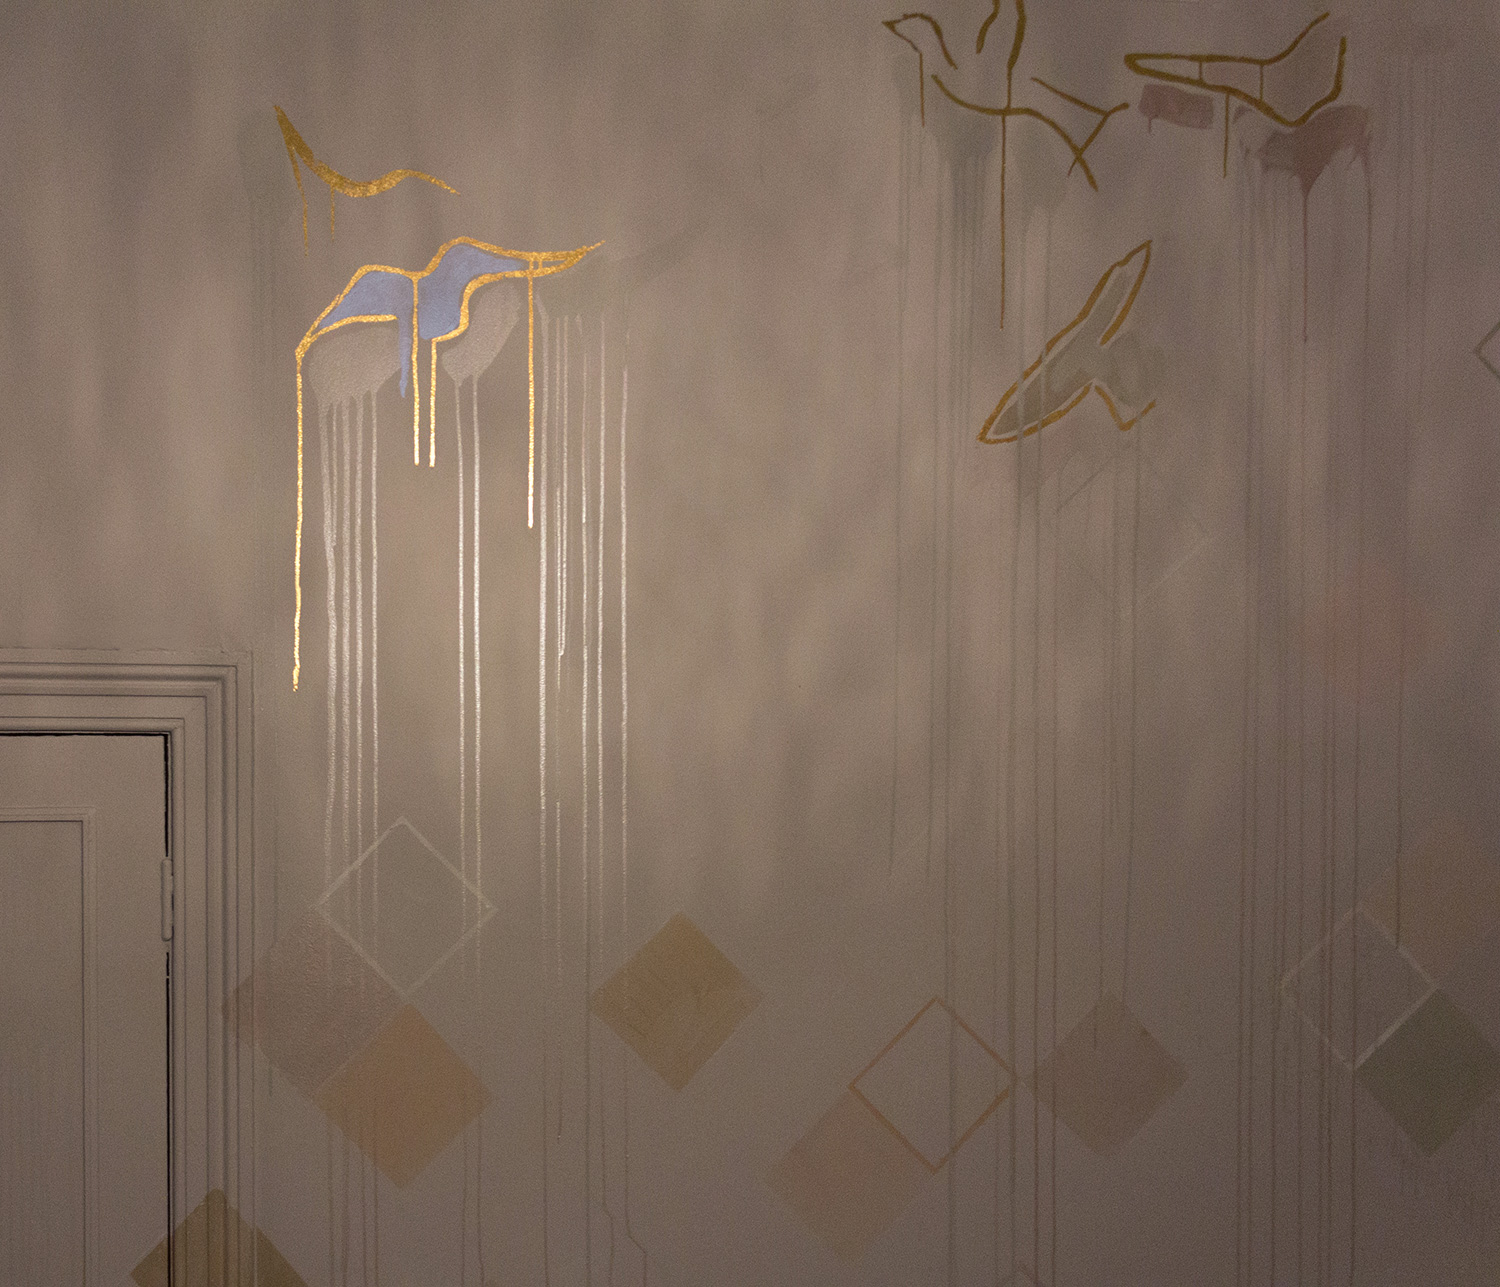 Pastel bedroom mural with gold leaf birds and geometric shapes, one bird is spotlit.